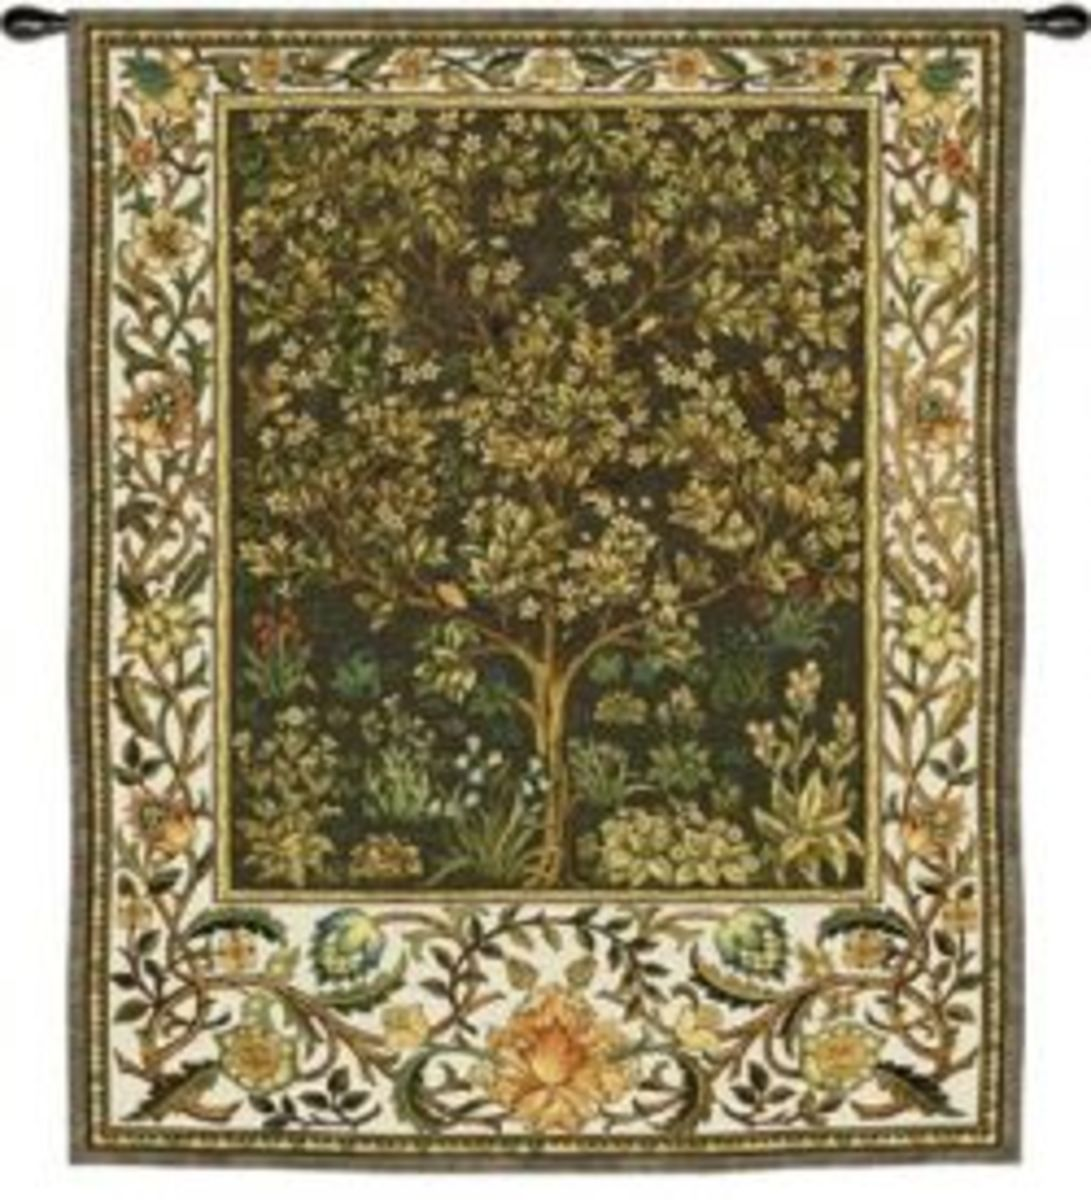 Tree of Life Tapestry designed by William Morris. The Tree of Life was a frequent Gothic Revival theme.